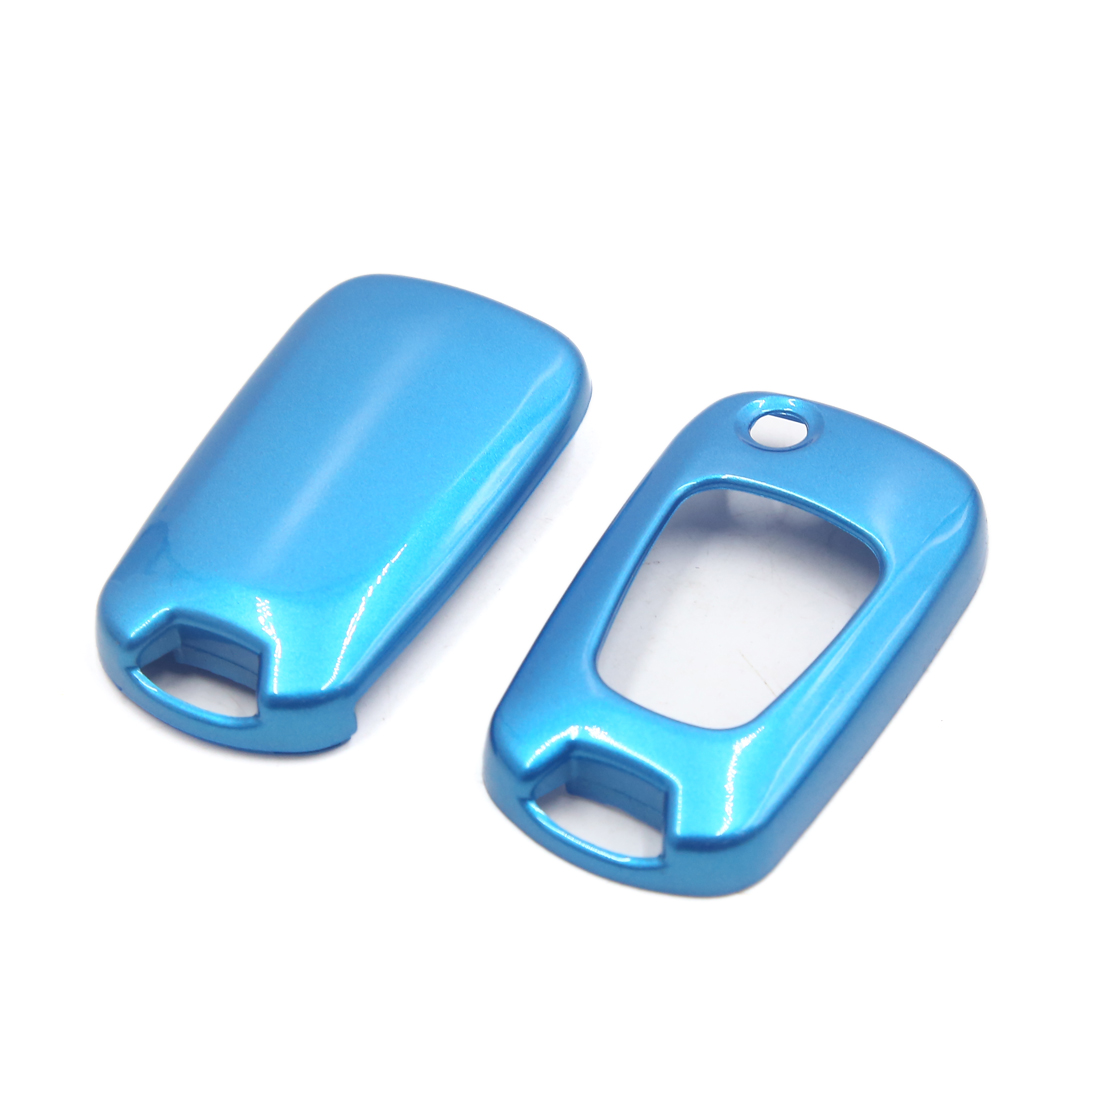 Blue ABS Plastic Car Automobile Remote Key Case Cover Protector for Hyundai